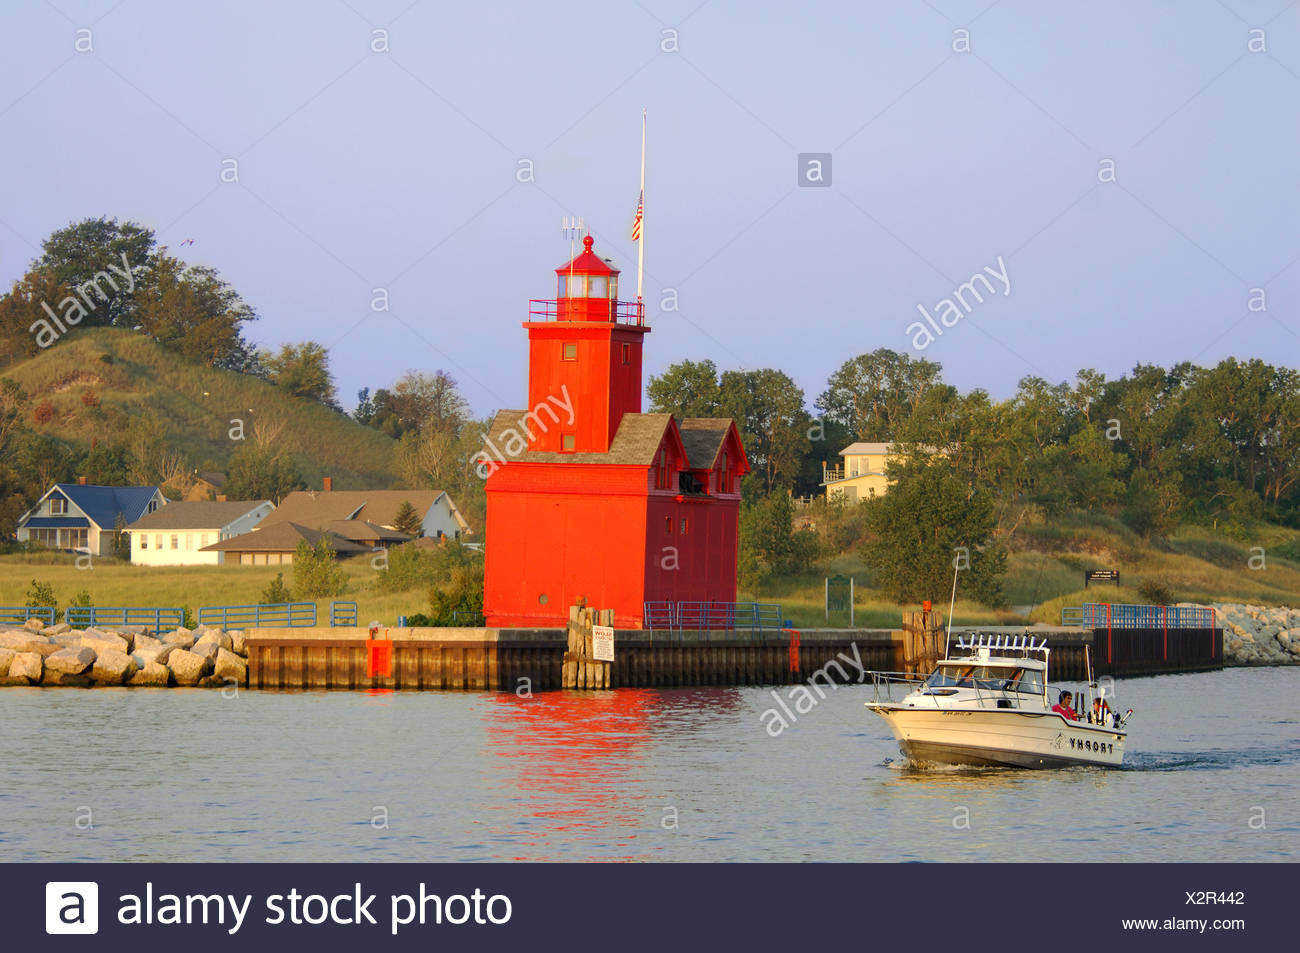 big red lighthouse lighthouse red boat motorboat michigan lake shore